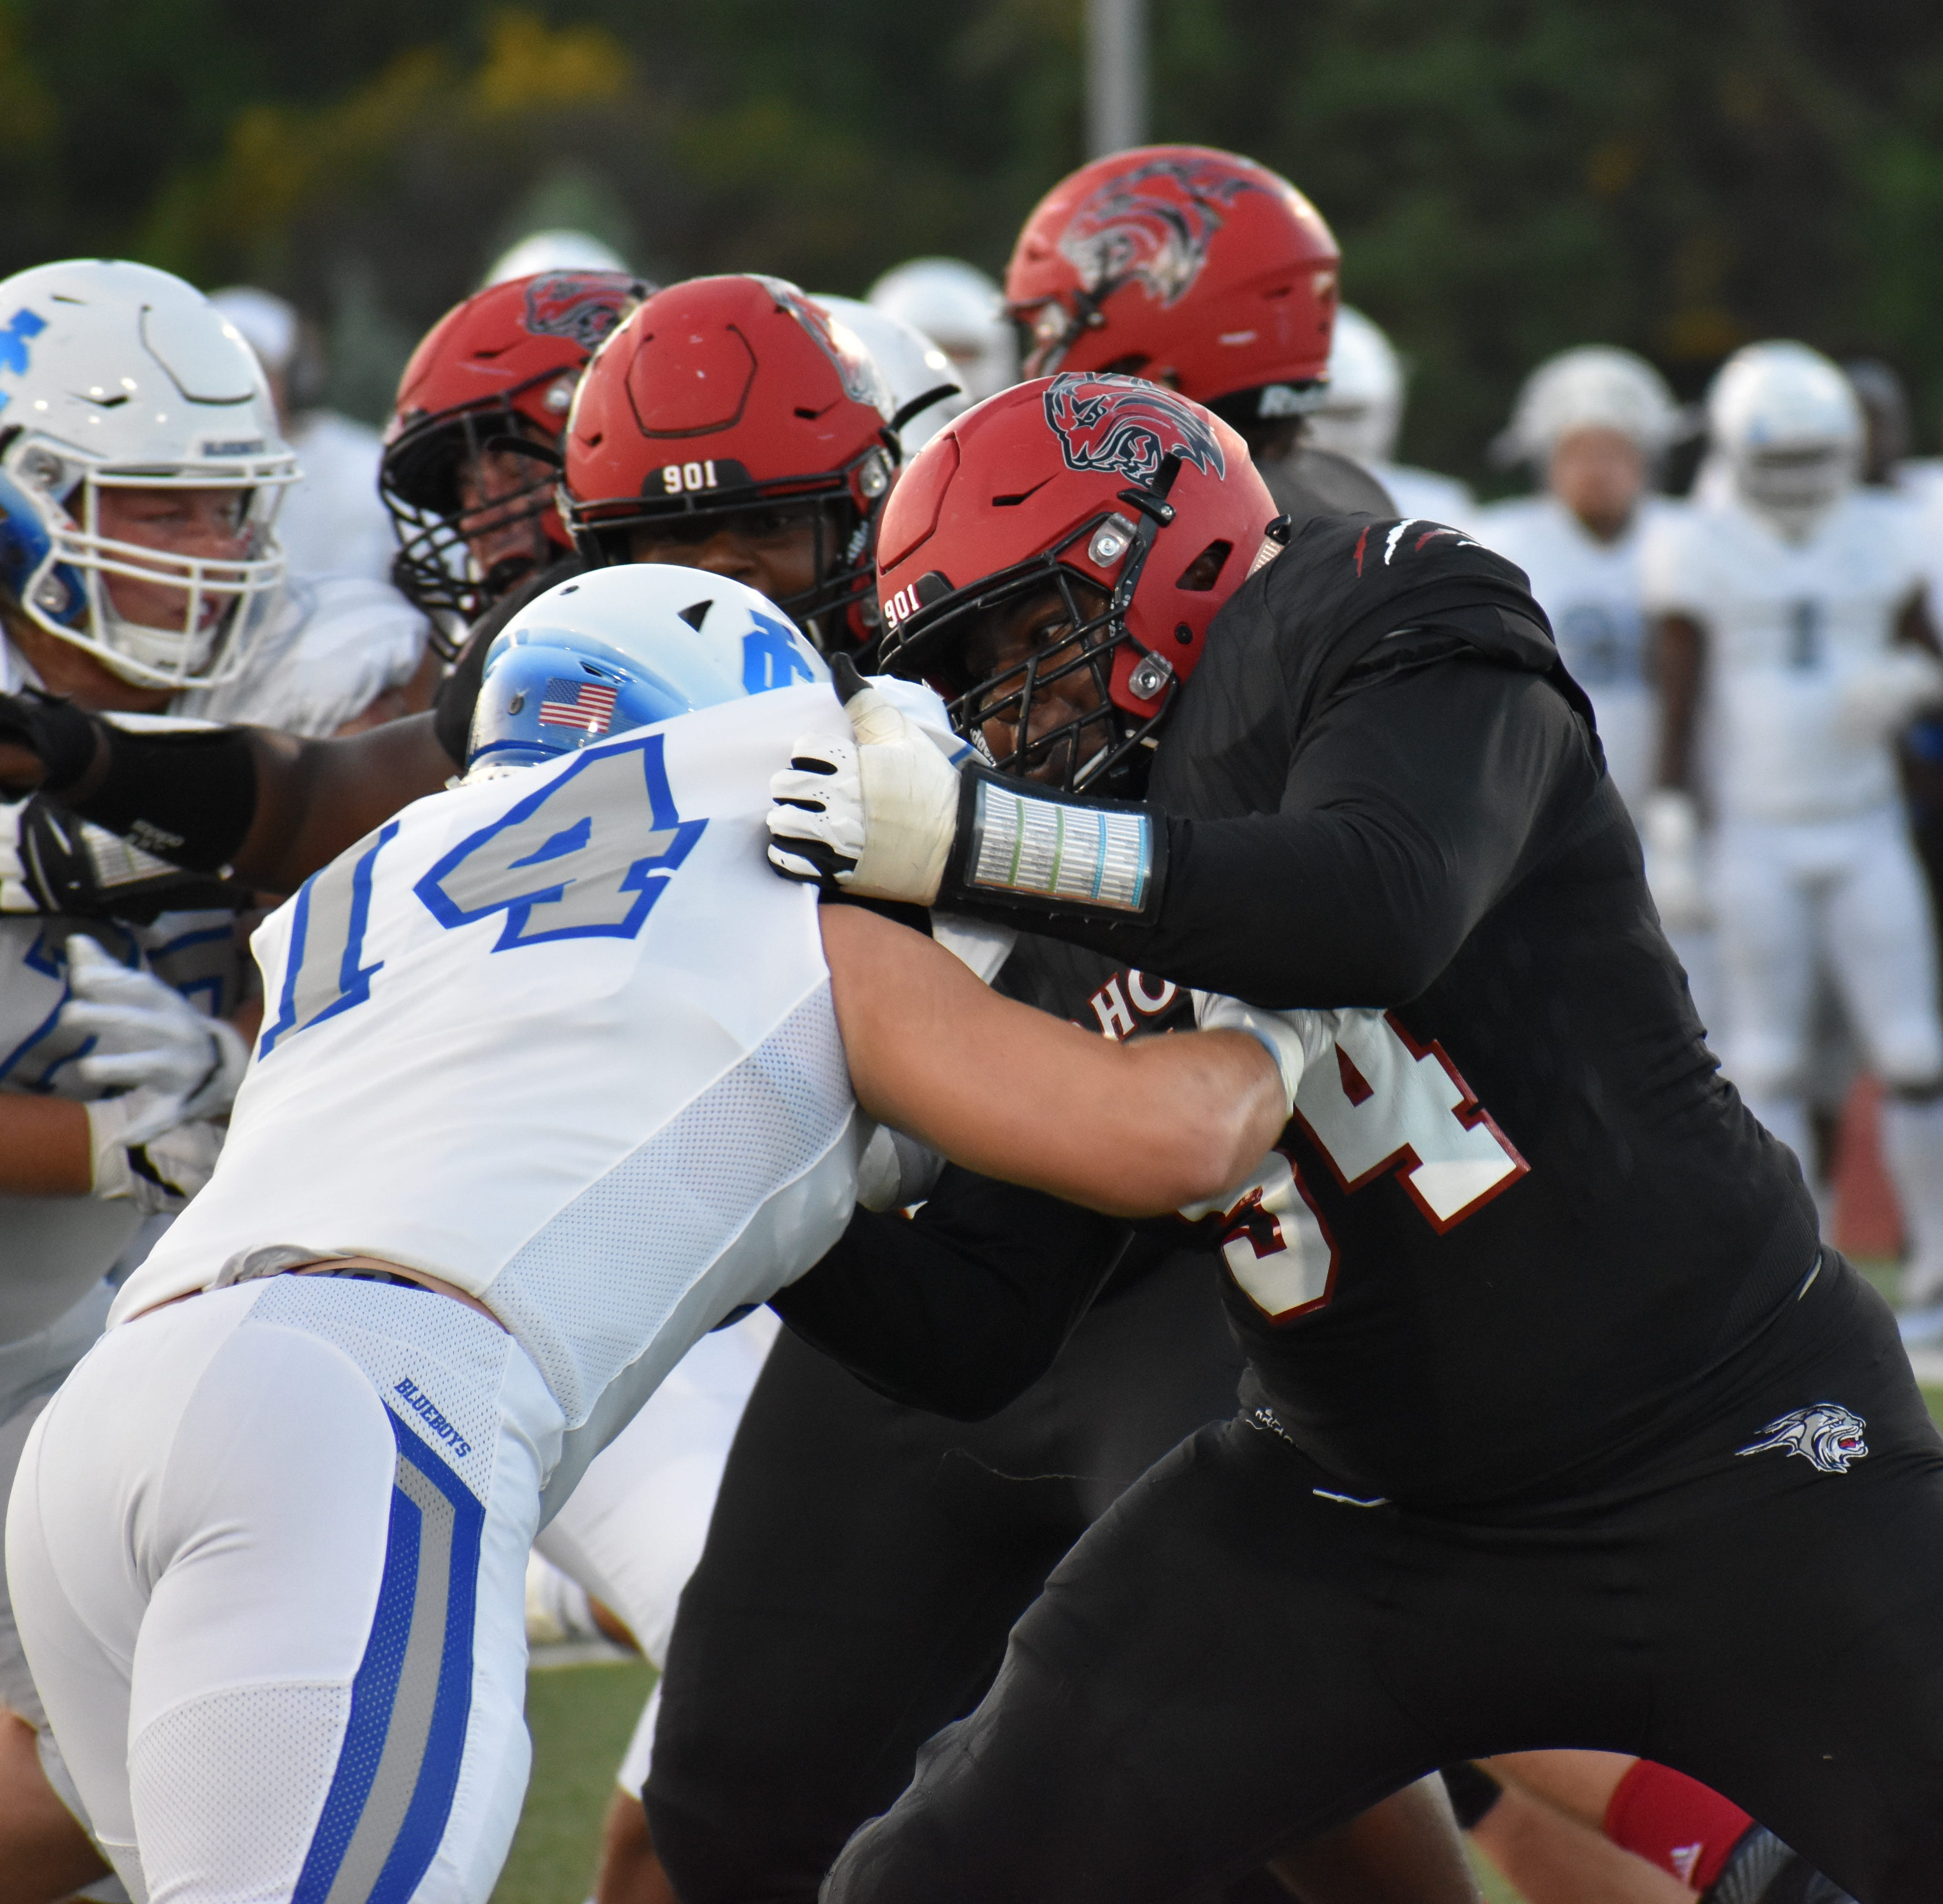 Houston Texans: Rhodes College All-American lineman signs as undrafted free agent